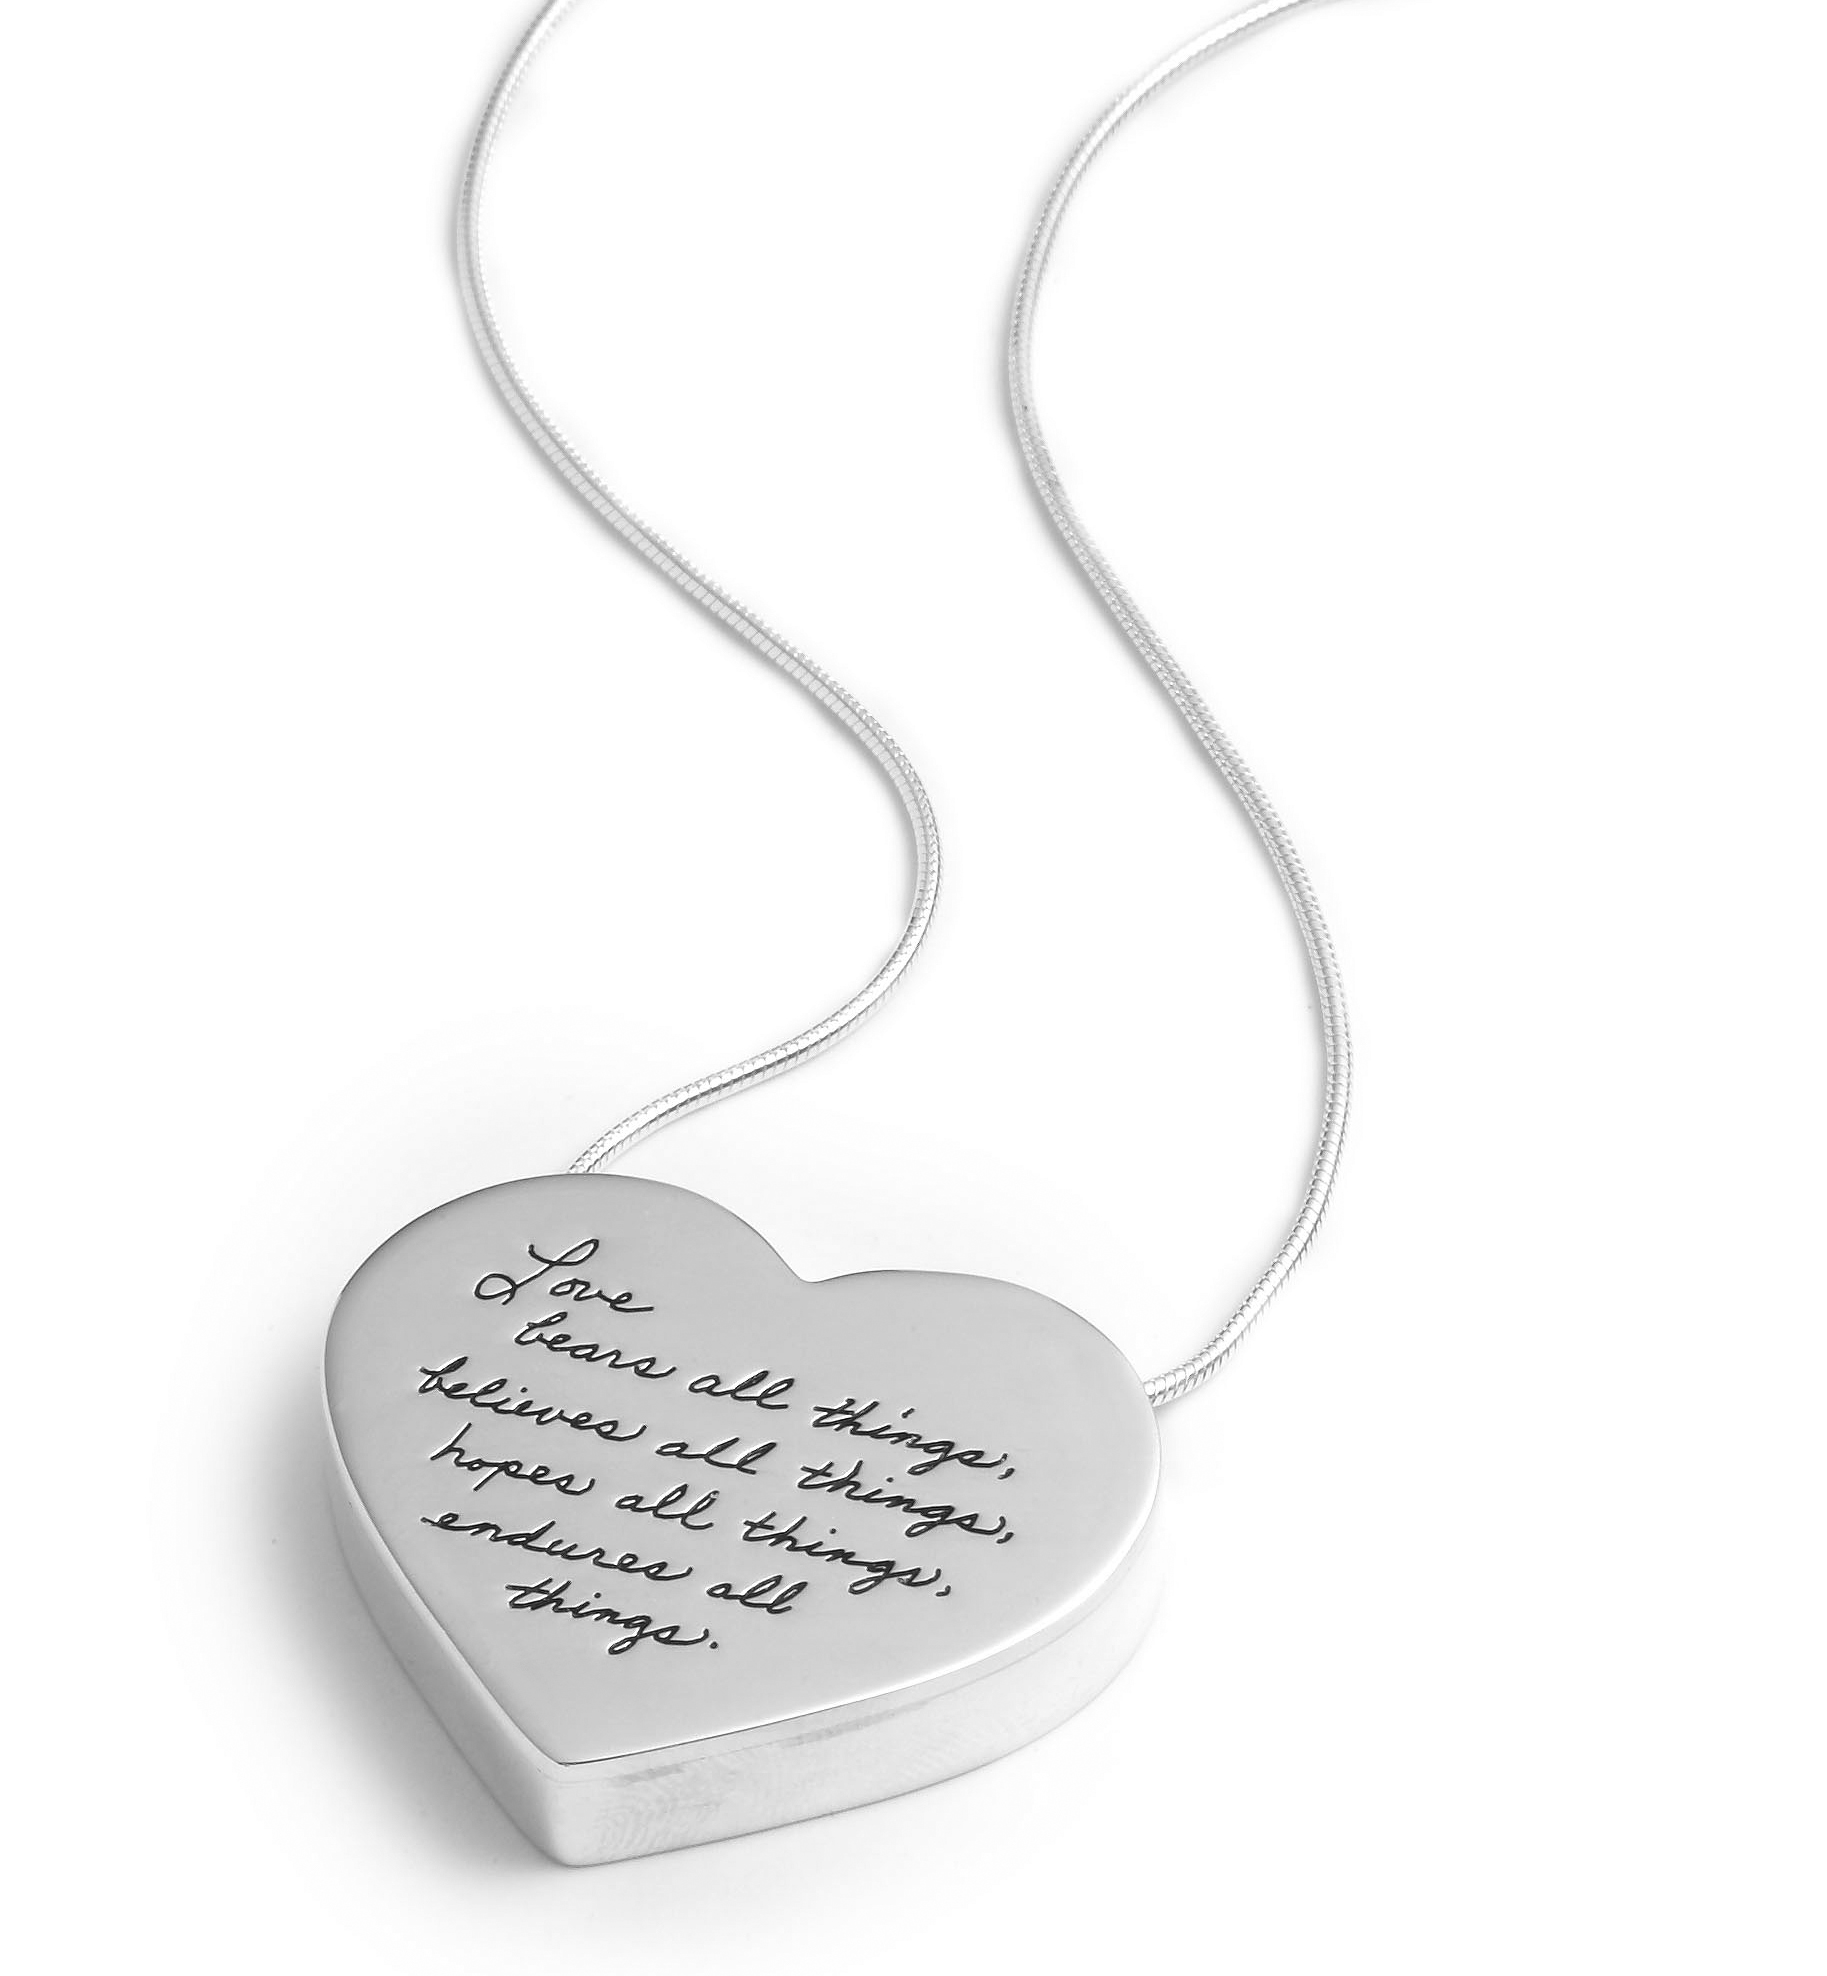 3bf8f45641 Inspirational sterling silver three-dimentional heart pendant with Engraved  Quote: Love bears all things